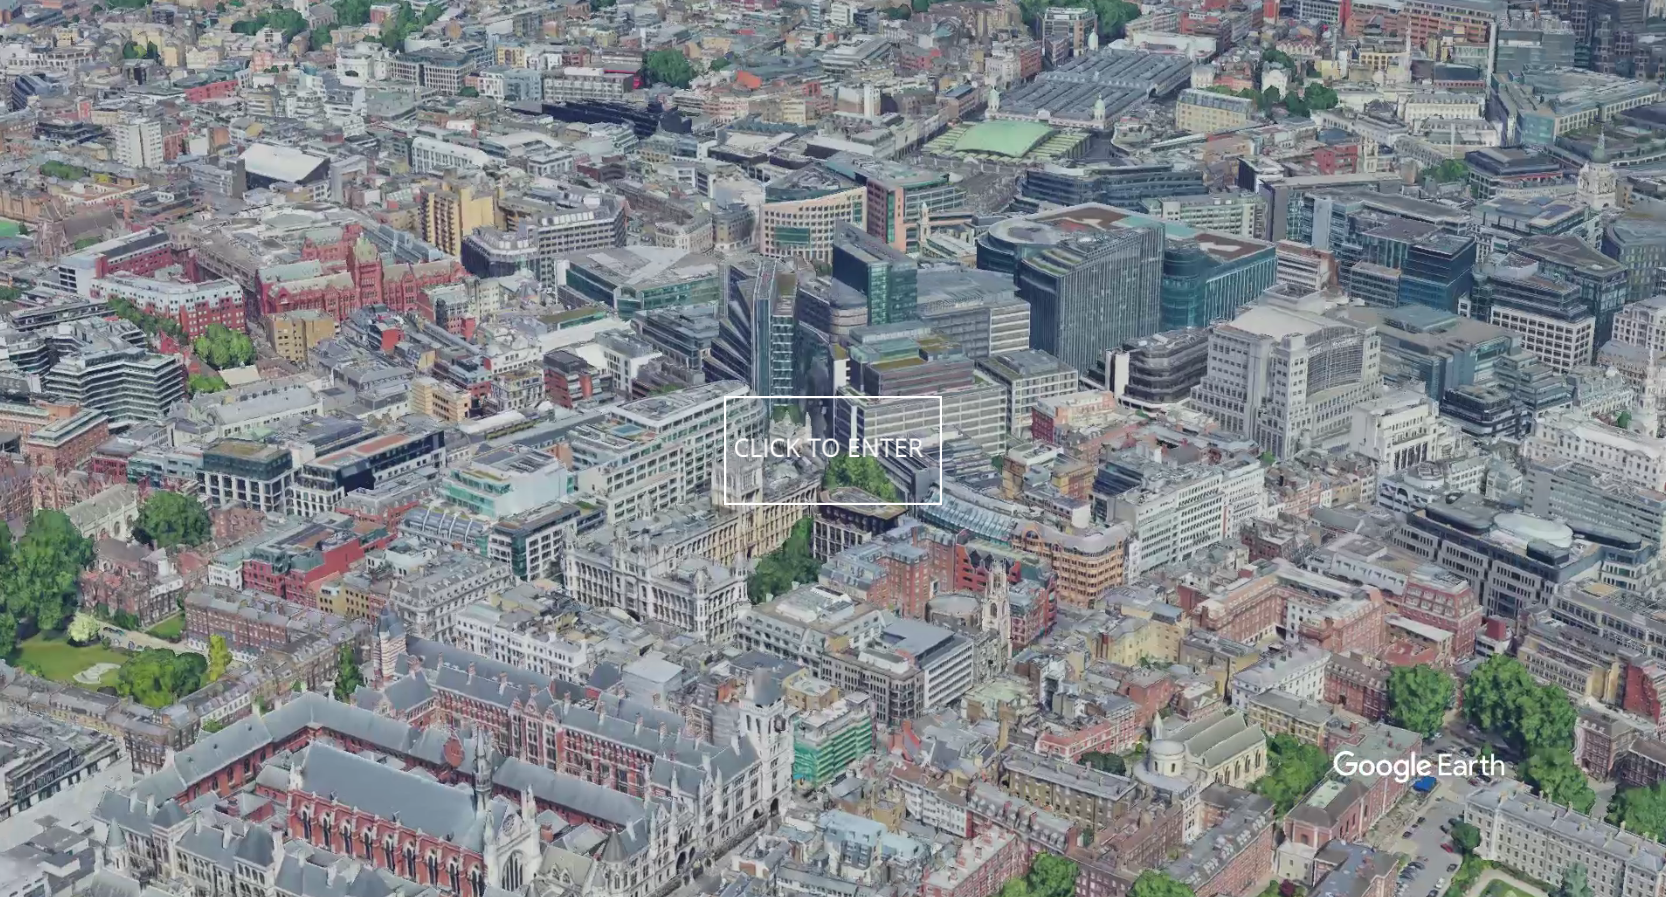 Commercial Property Brochure Intro Video - Screenshot showing a still from the 3D video